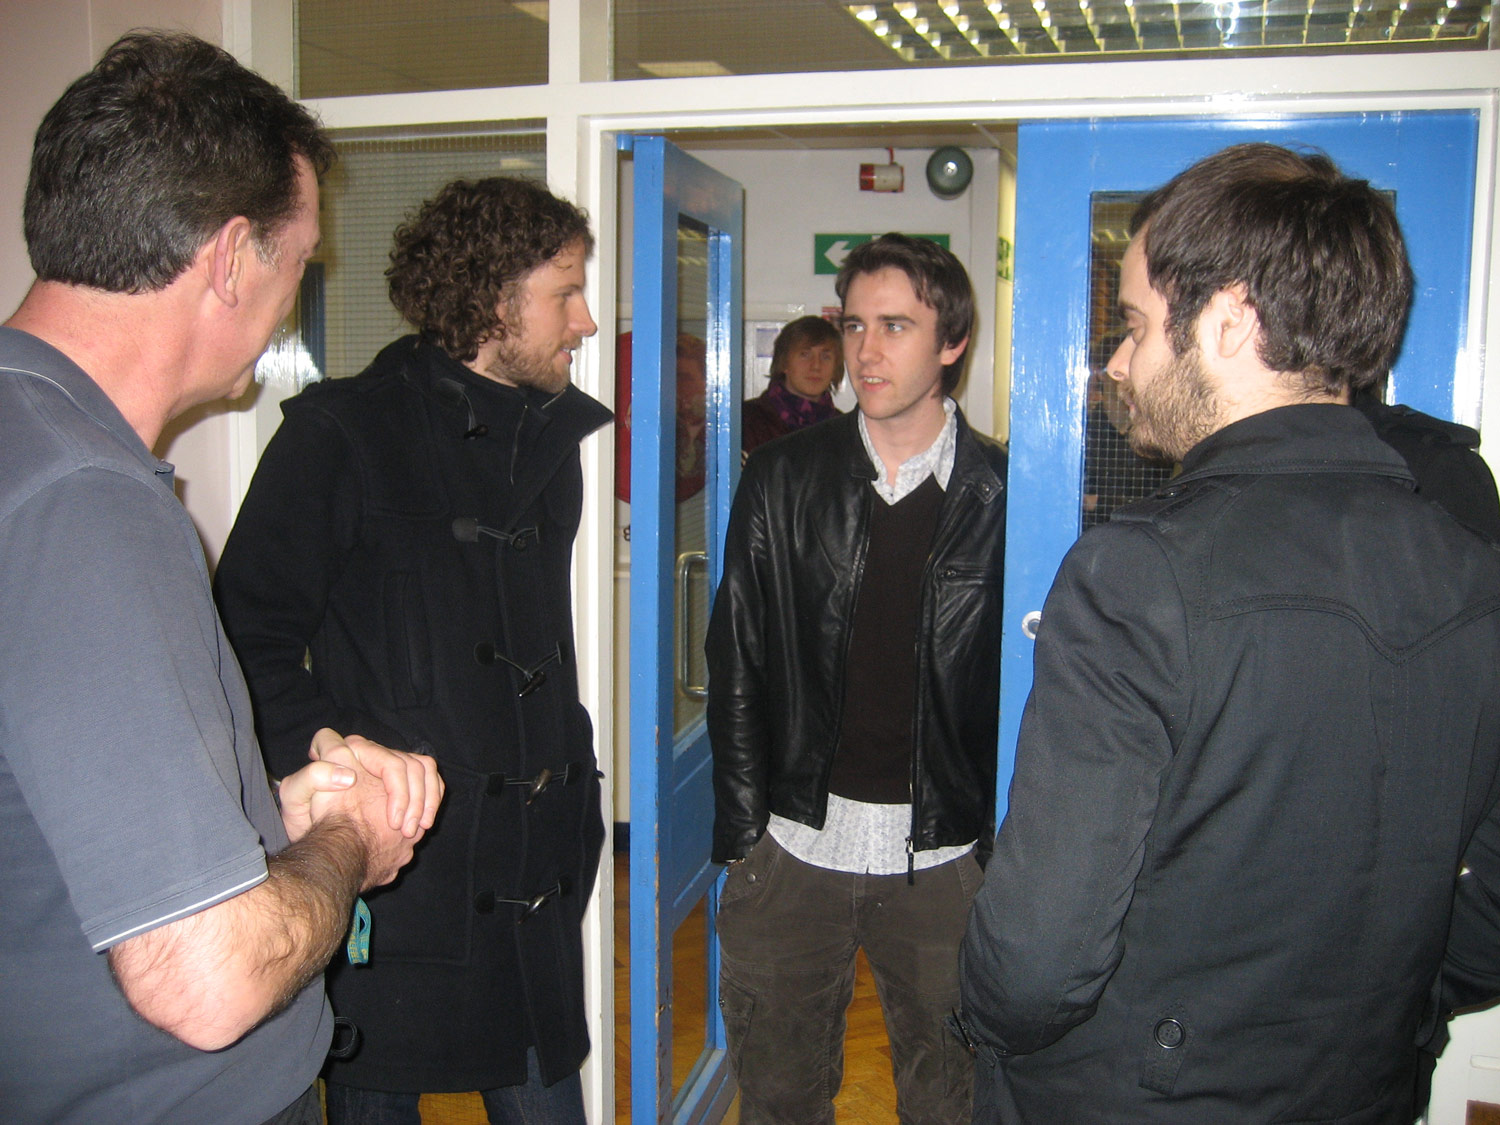 THE 00s: Former pupils the Kaiser Chiefs visit St. Mary's filming a BBC documentary in 2007 and speak to Hollywood actor Matthew Lewis.